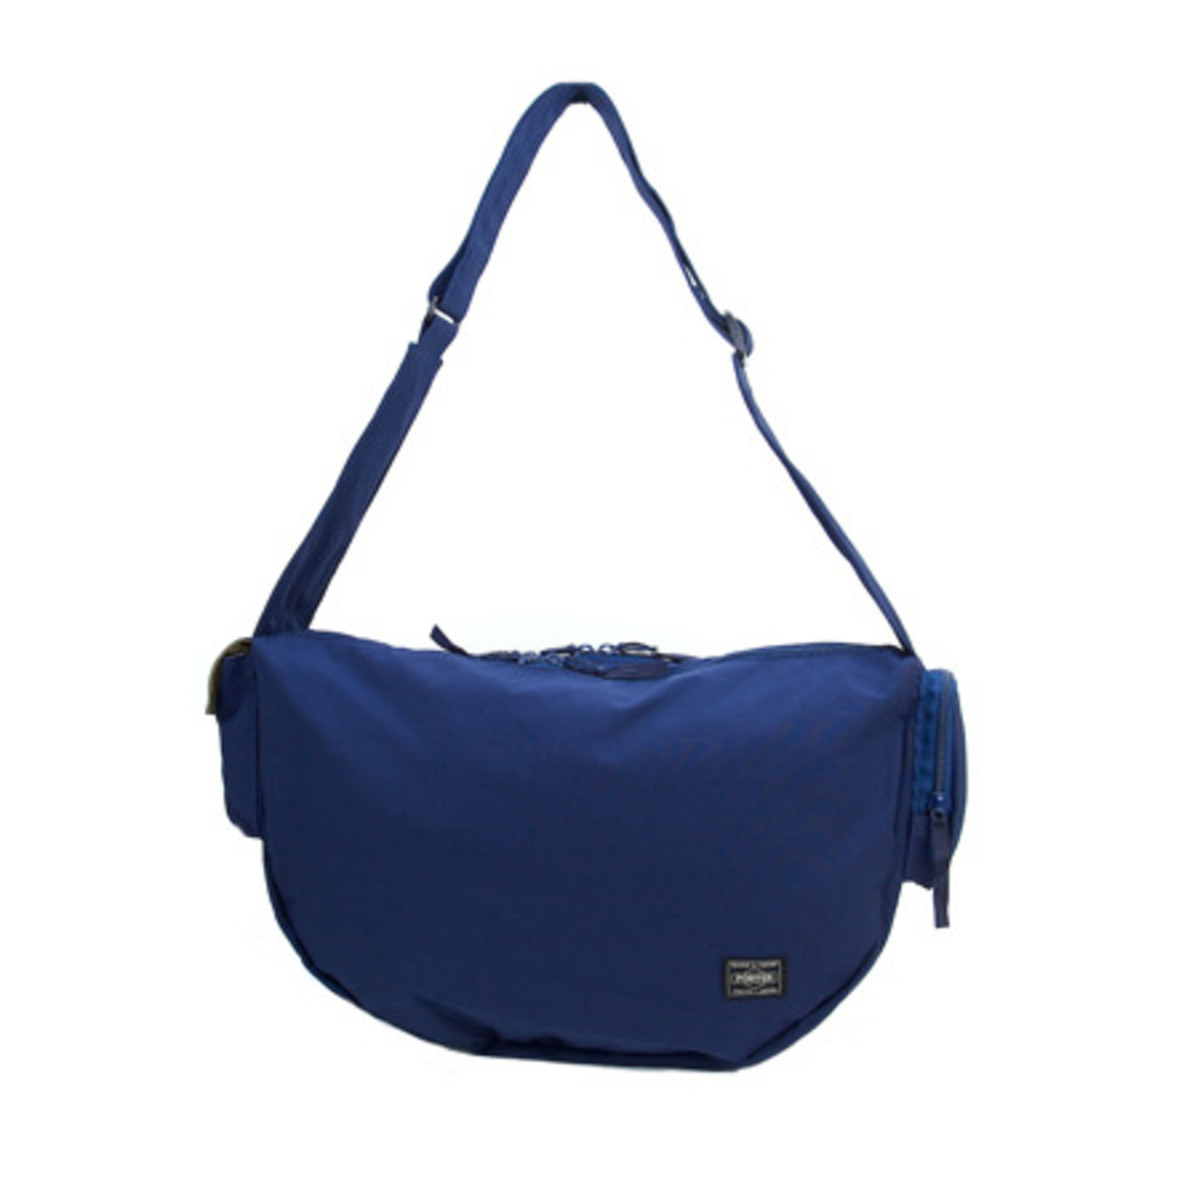 w-zip-shoulder-bag-navy